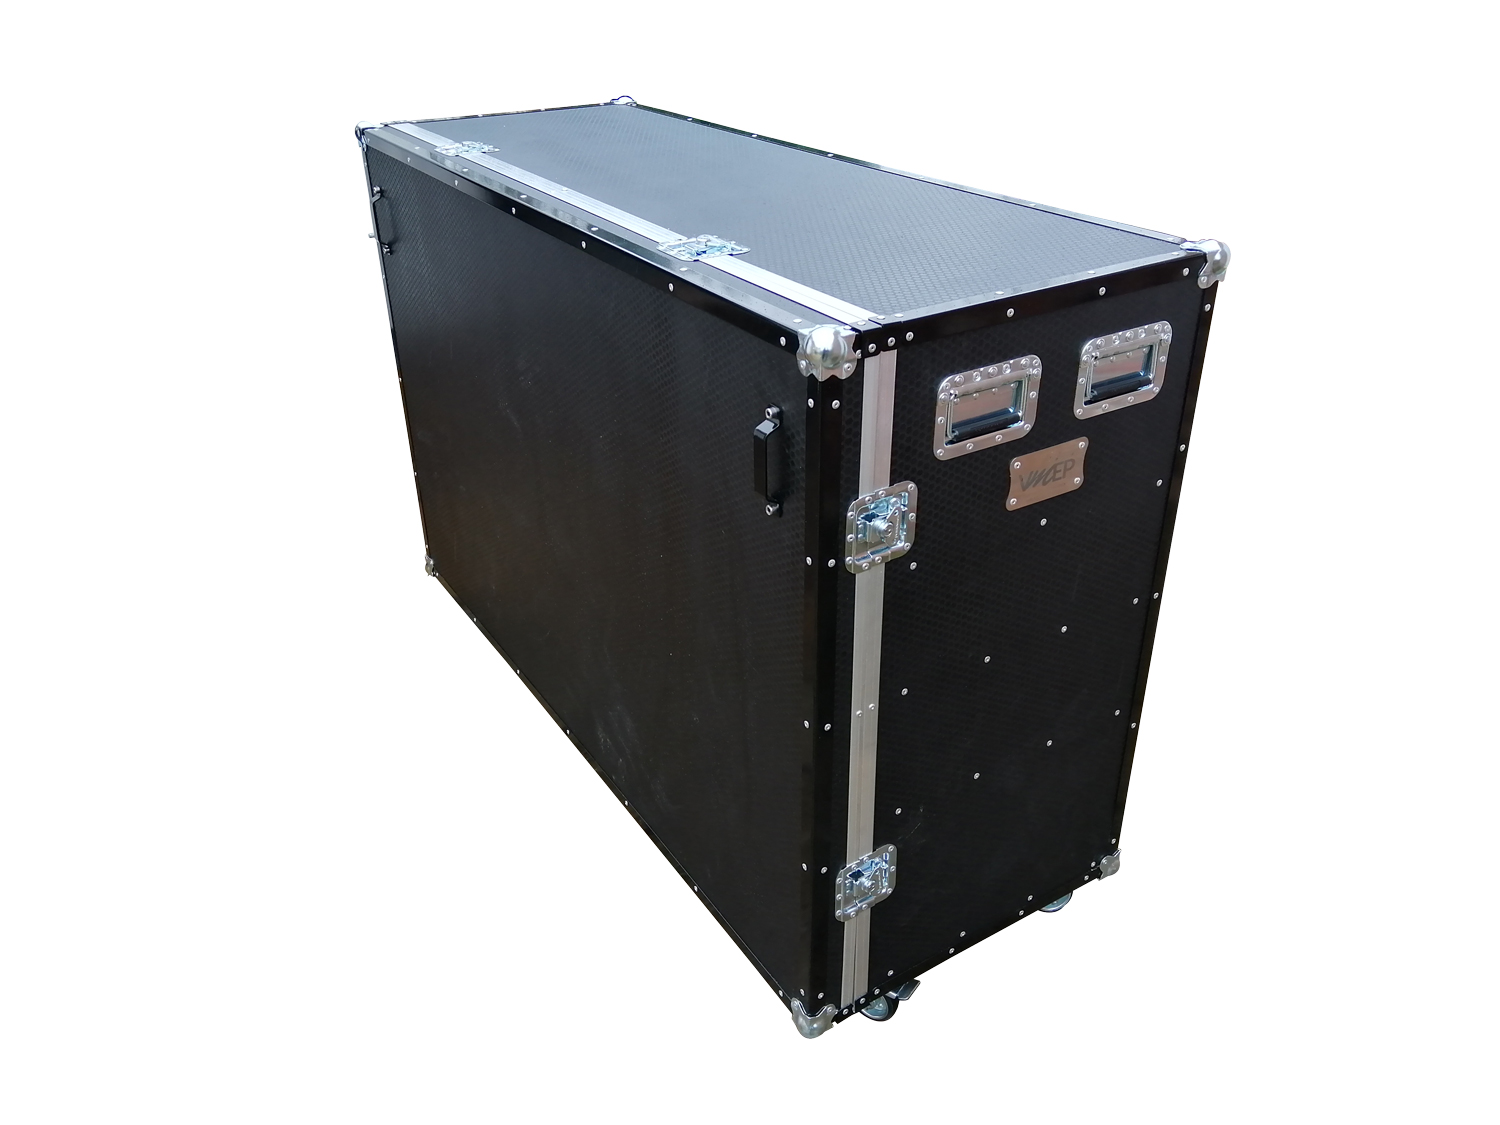 Musician tour flight case storage